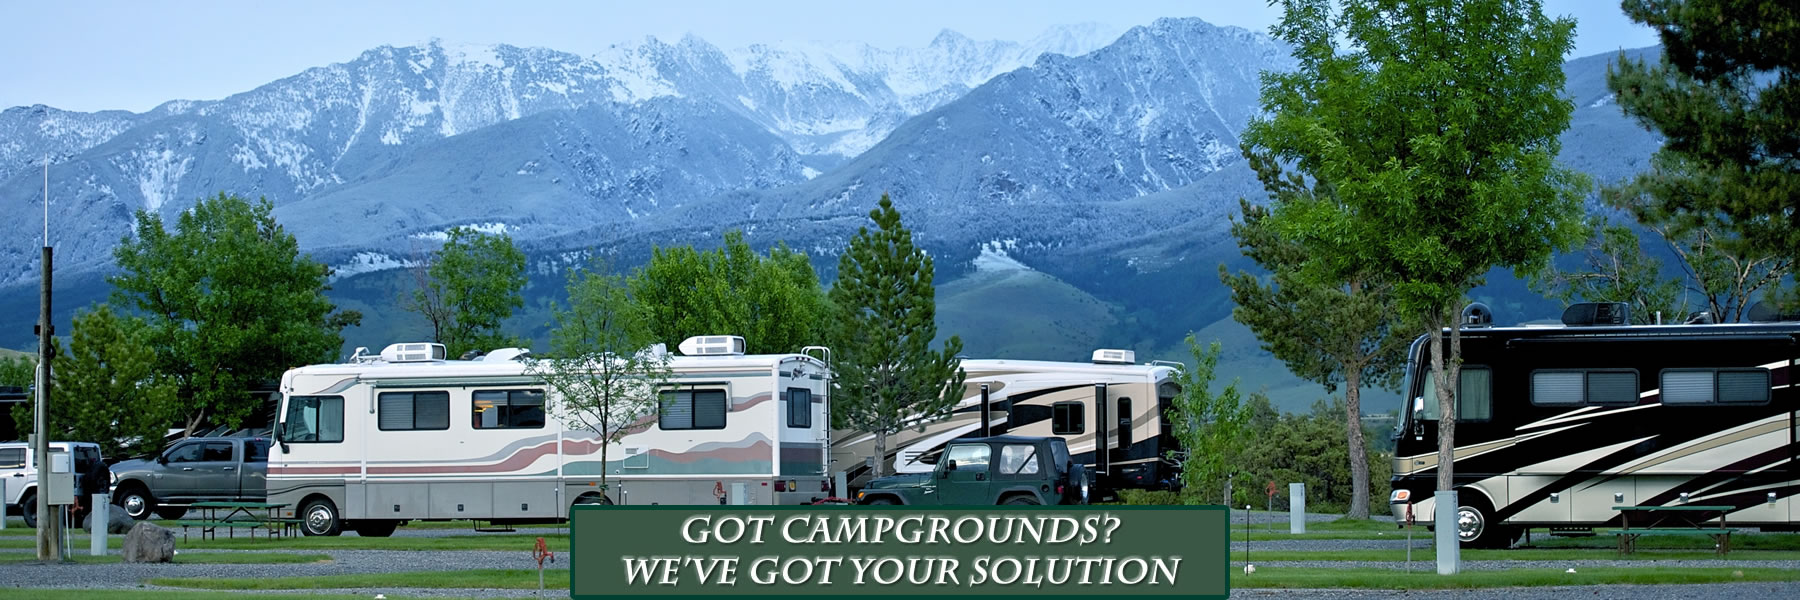 Campground and RV park reservation software